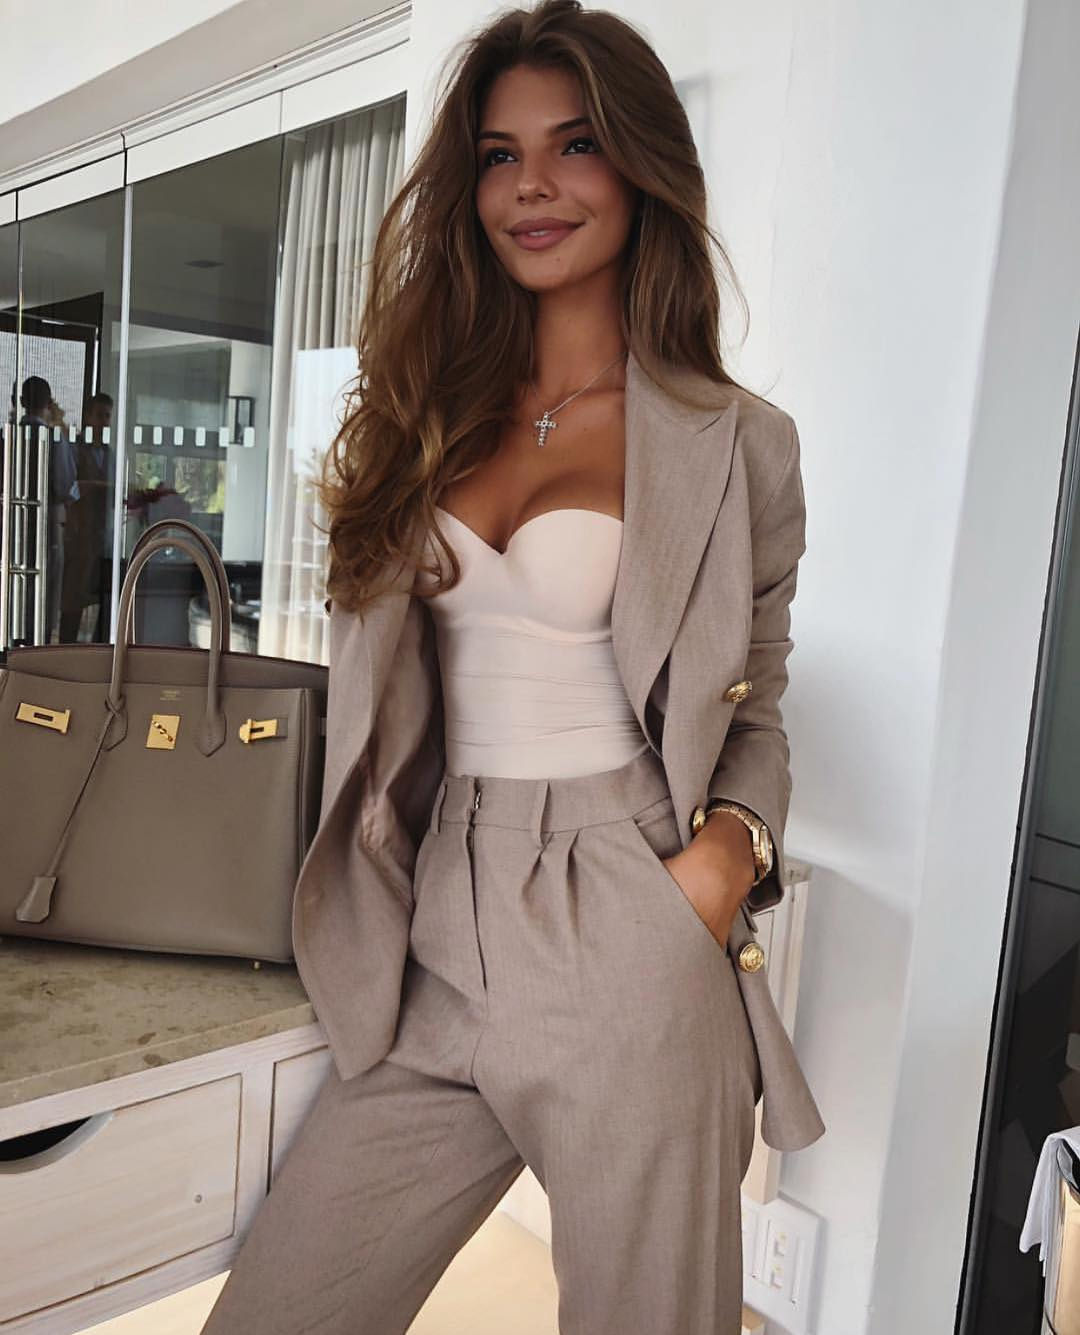 Cream Grey Pantsuit And White Strapless Bodysuit For Fall Office Hours 2019